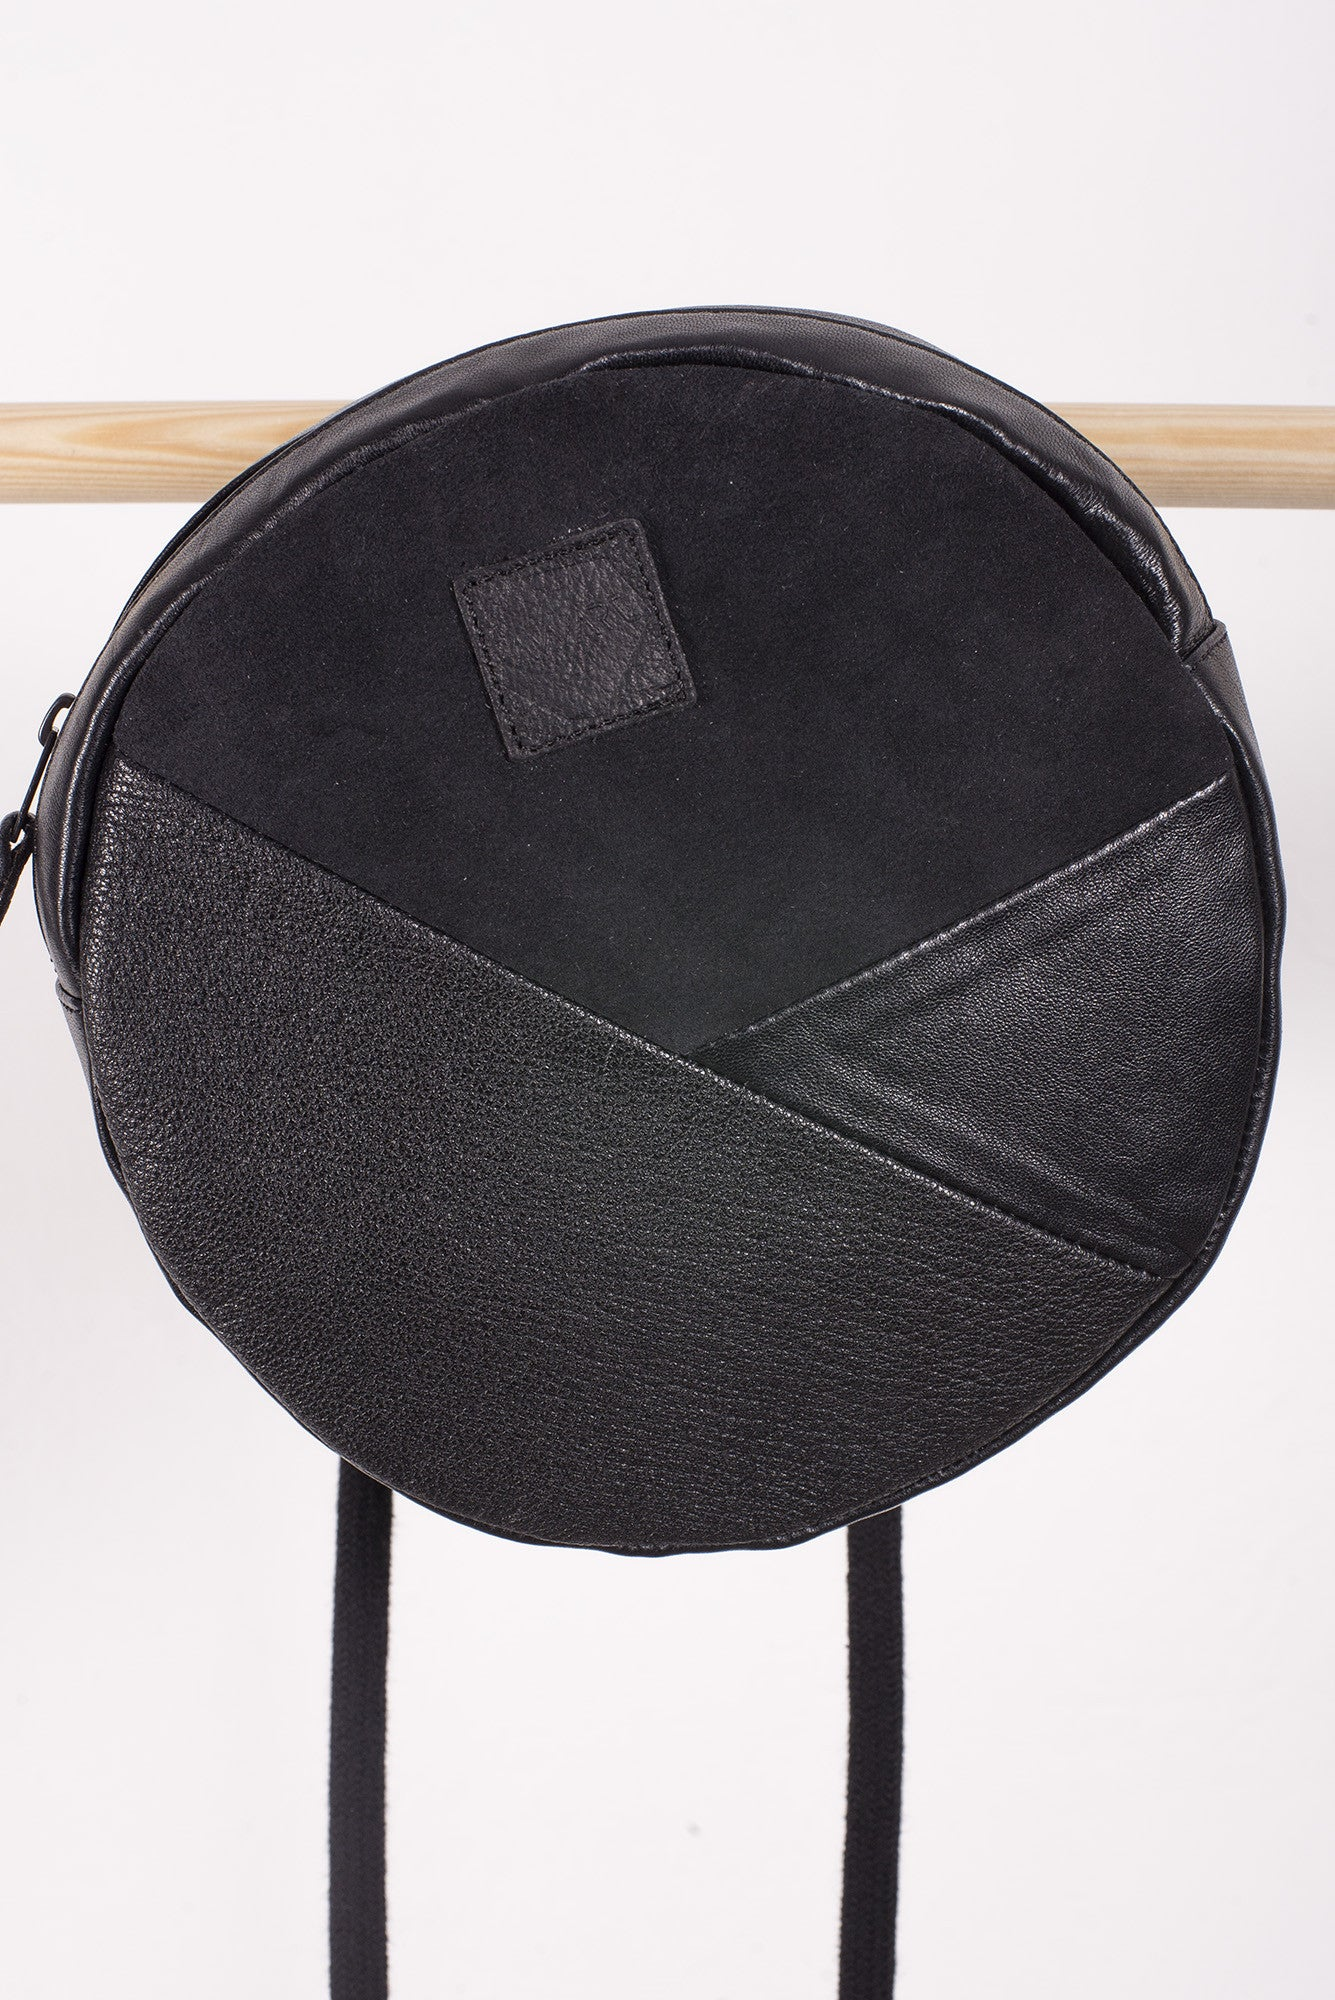 O-SHAPE PATCHWORK BLACK LEATHER HIP BAG